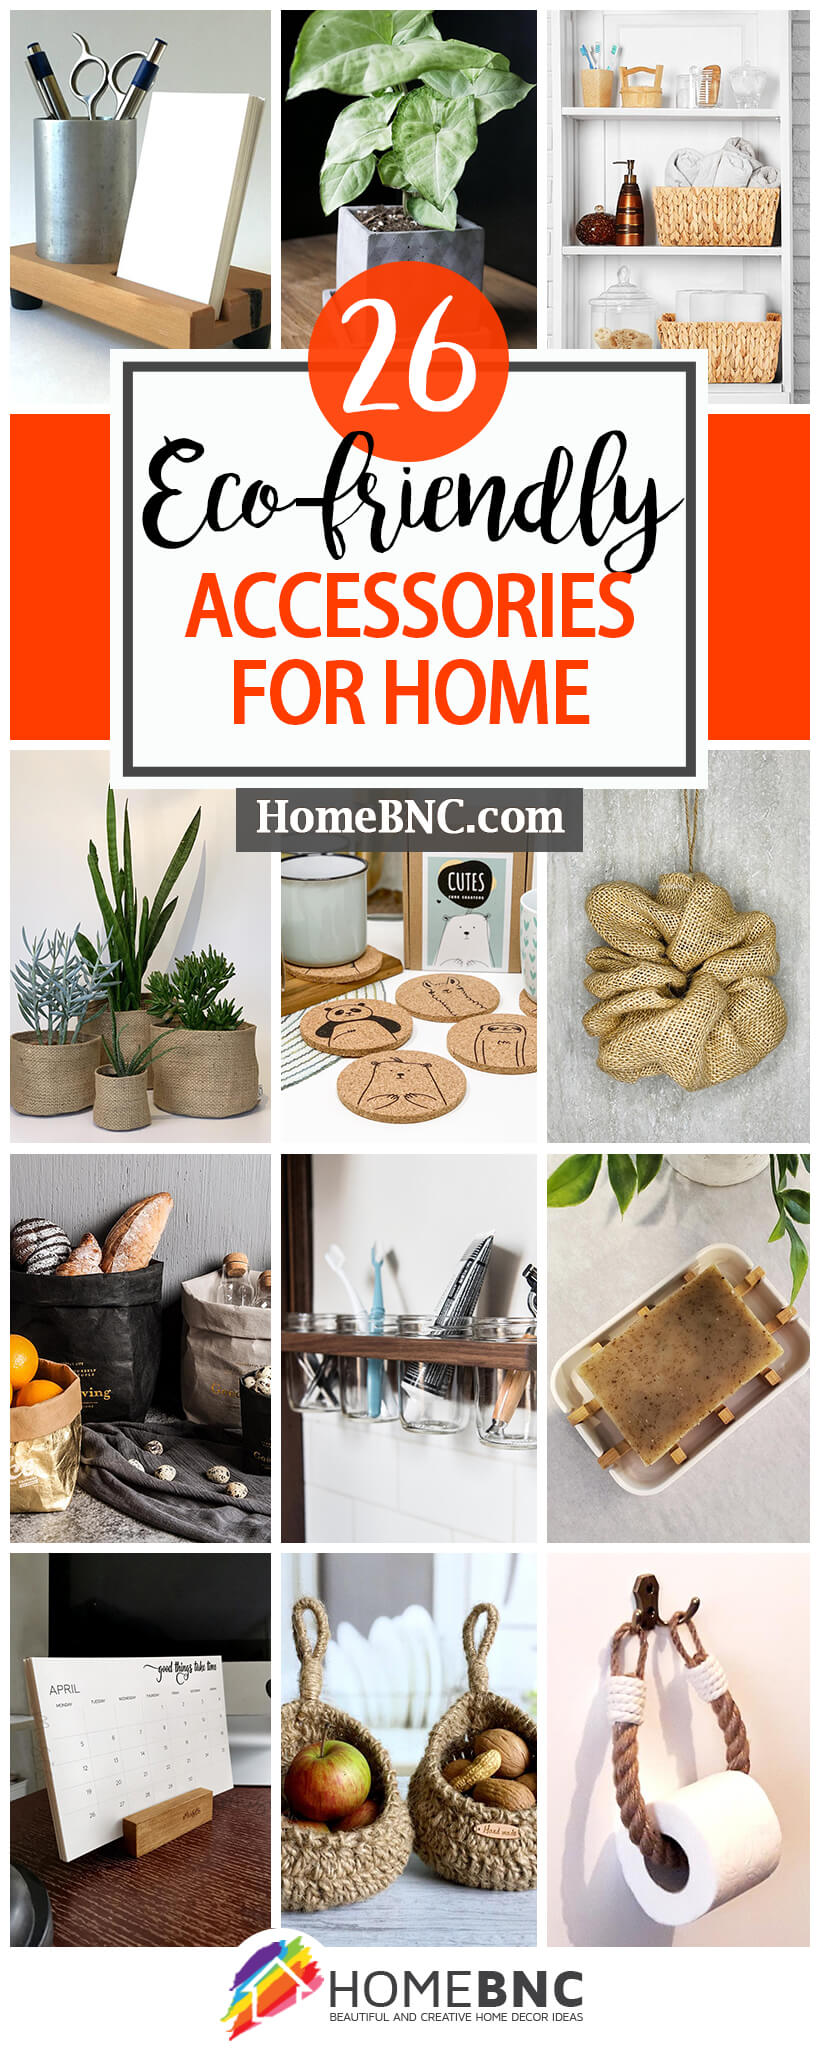 Best Eco-friendly Home Accessories